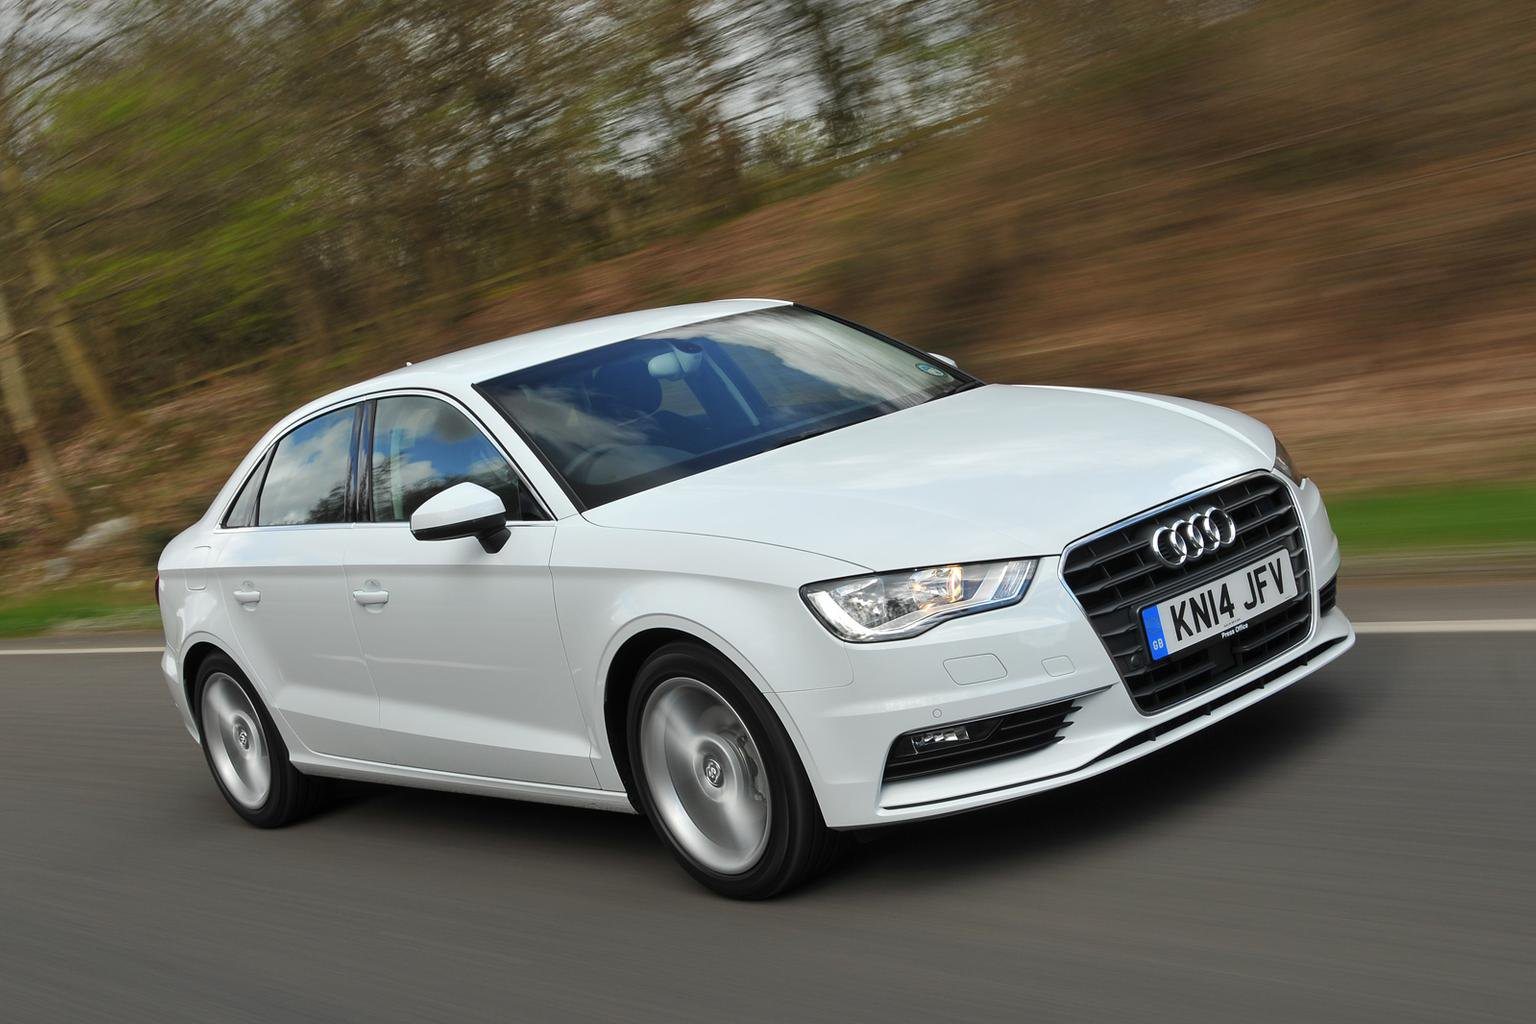 Our cars: Audi A3 Saloon and Mini Hatch